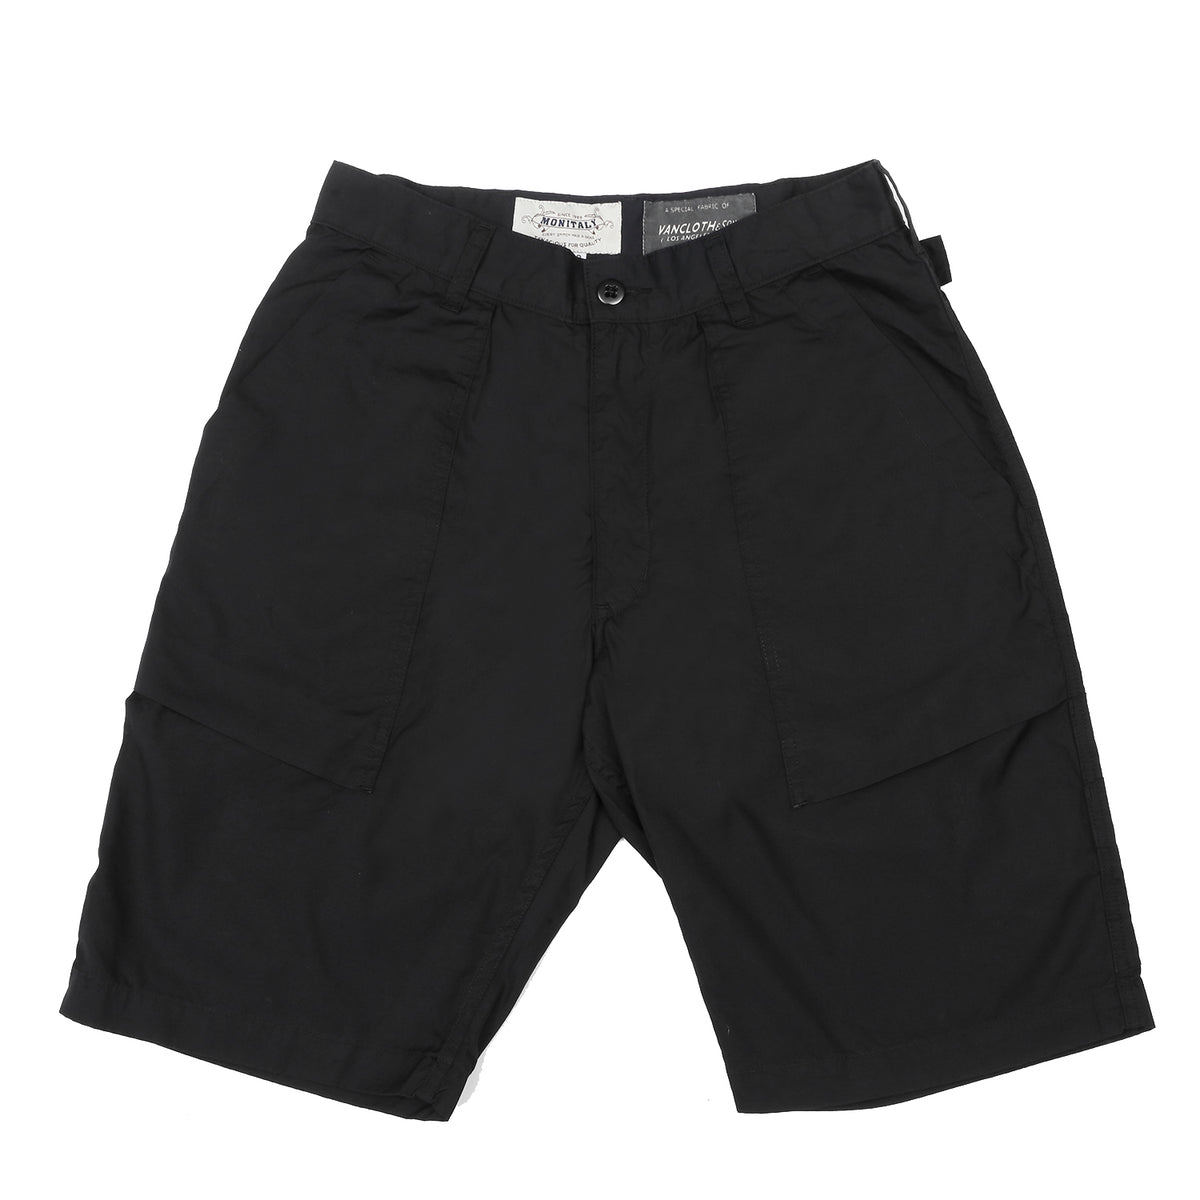 Monitaly - Utility Shorts - Black